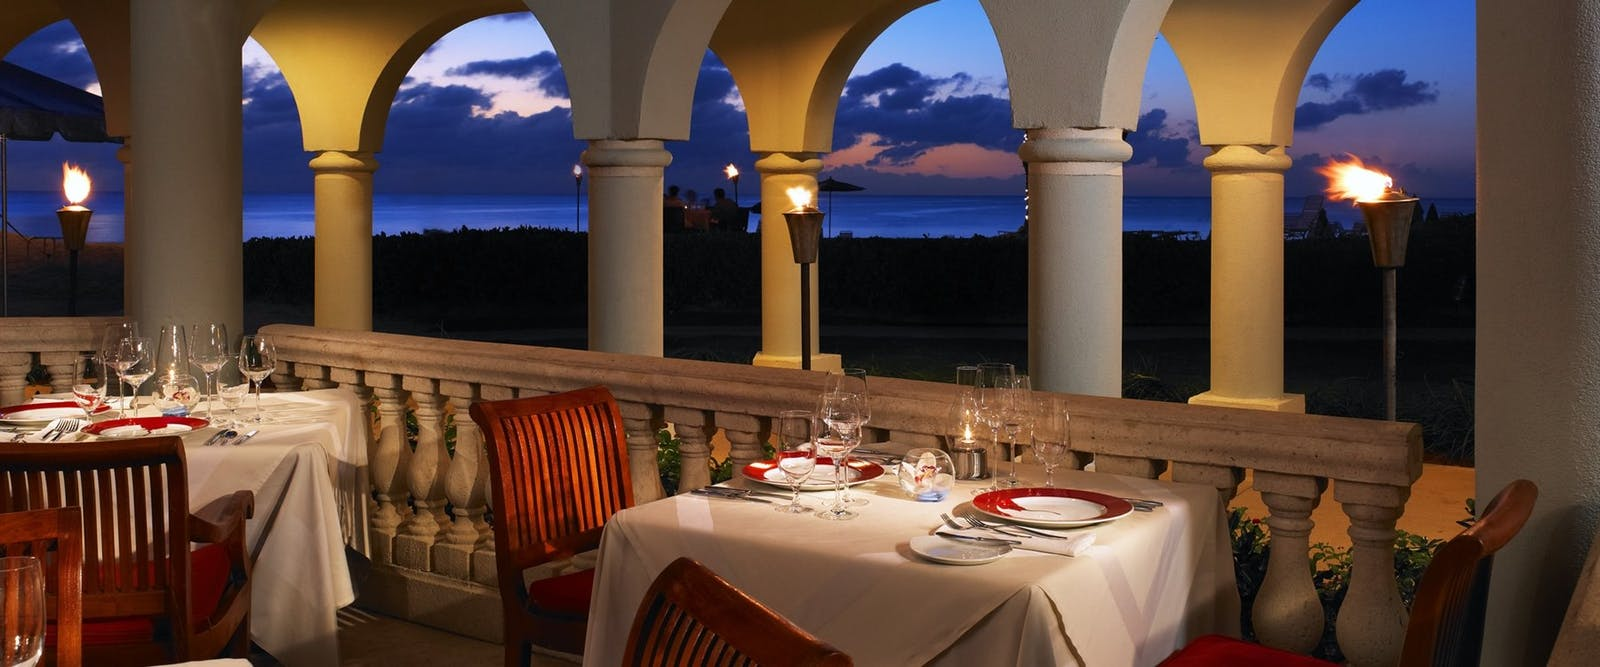 Beach House Restaurant at The Westin Grand Cayman Seven Mile Beach Resort & Spa, Cayman Islands